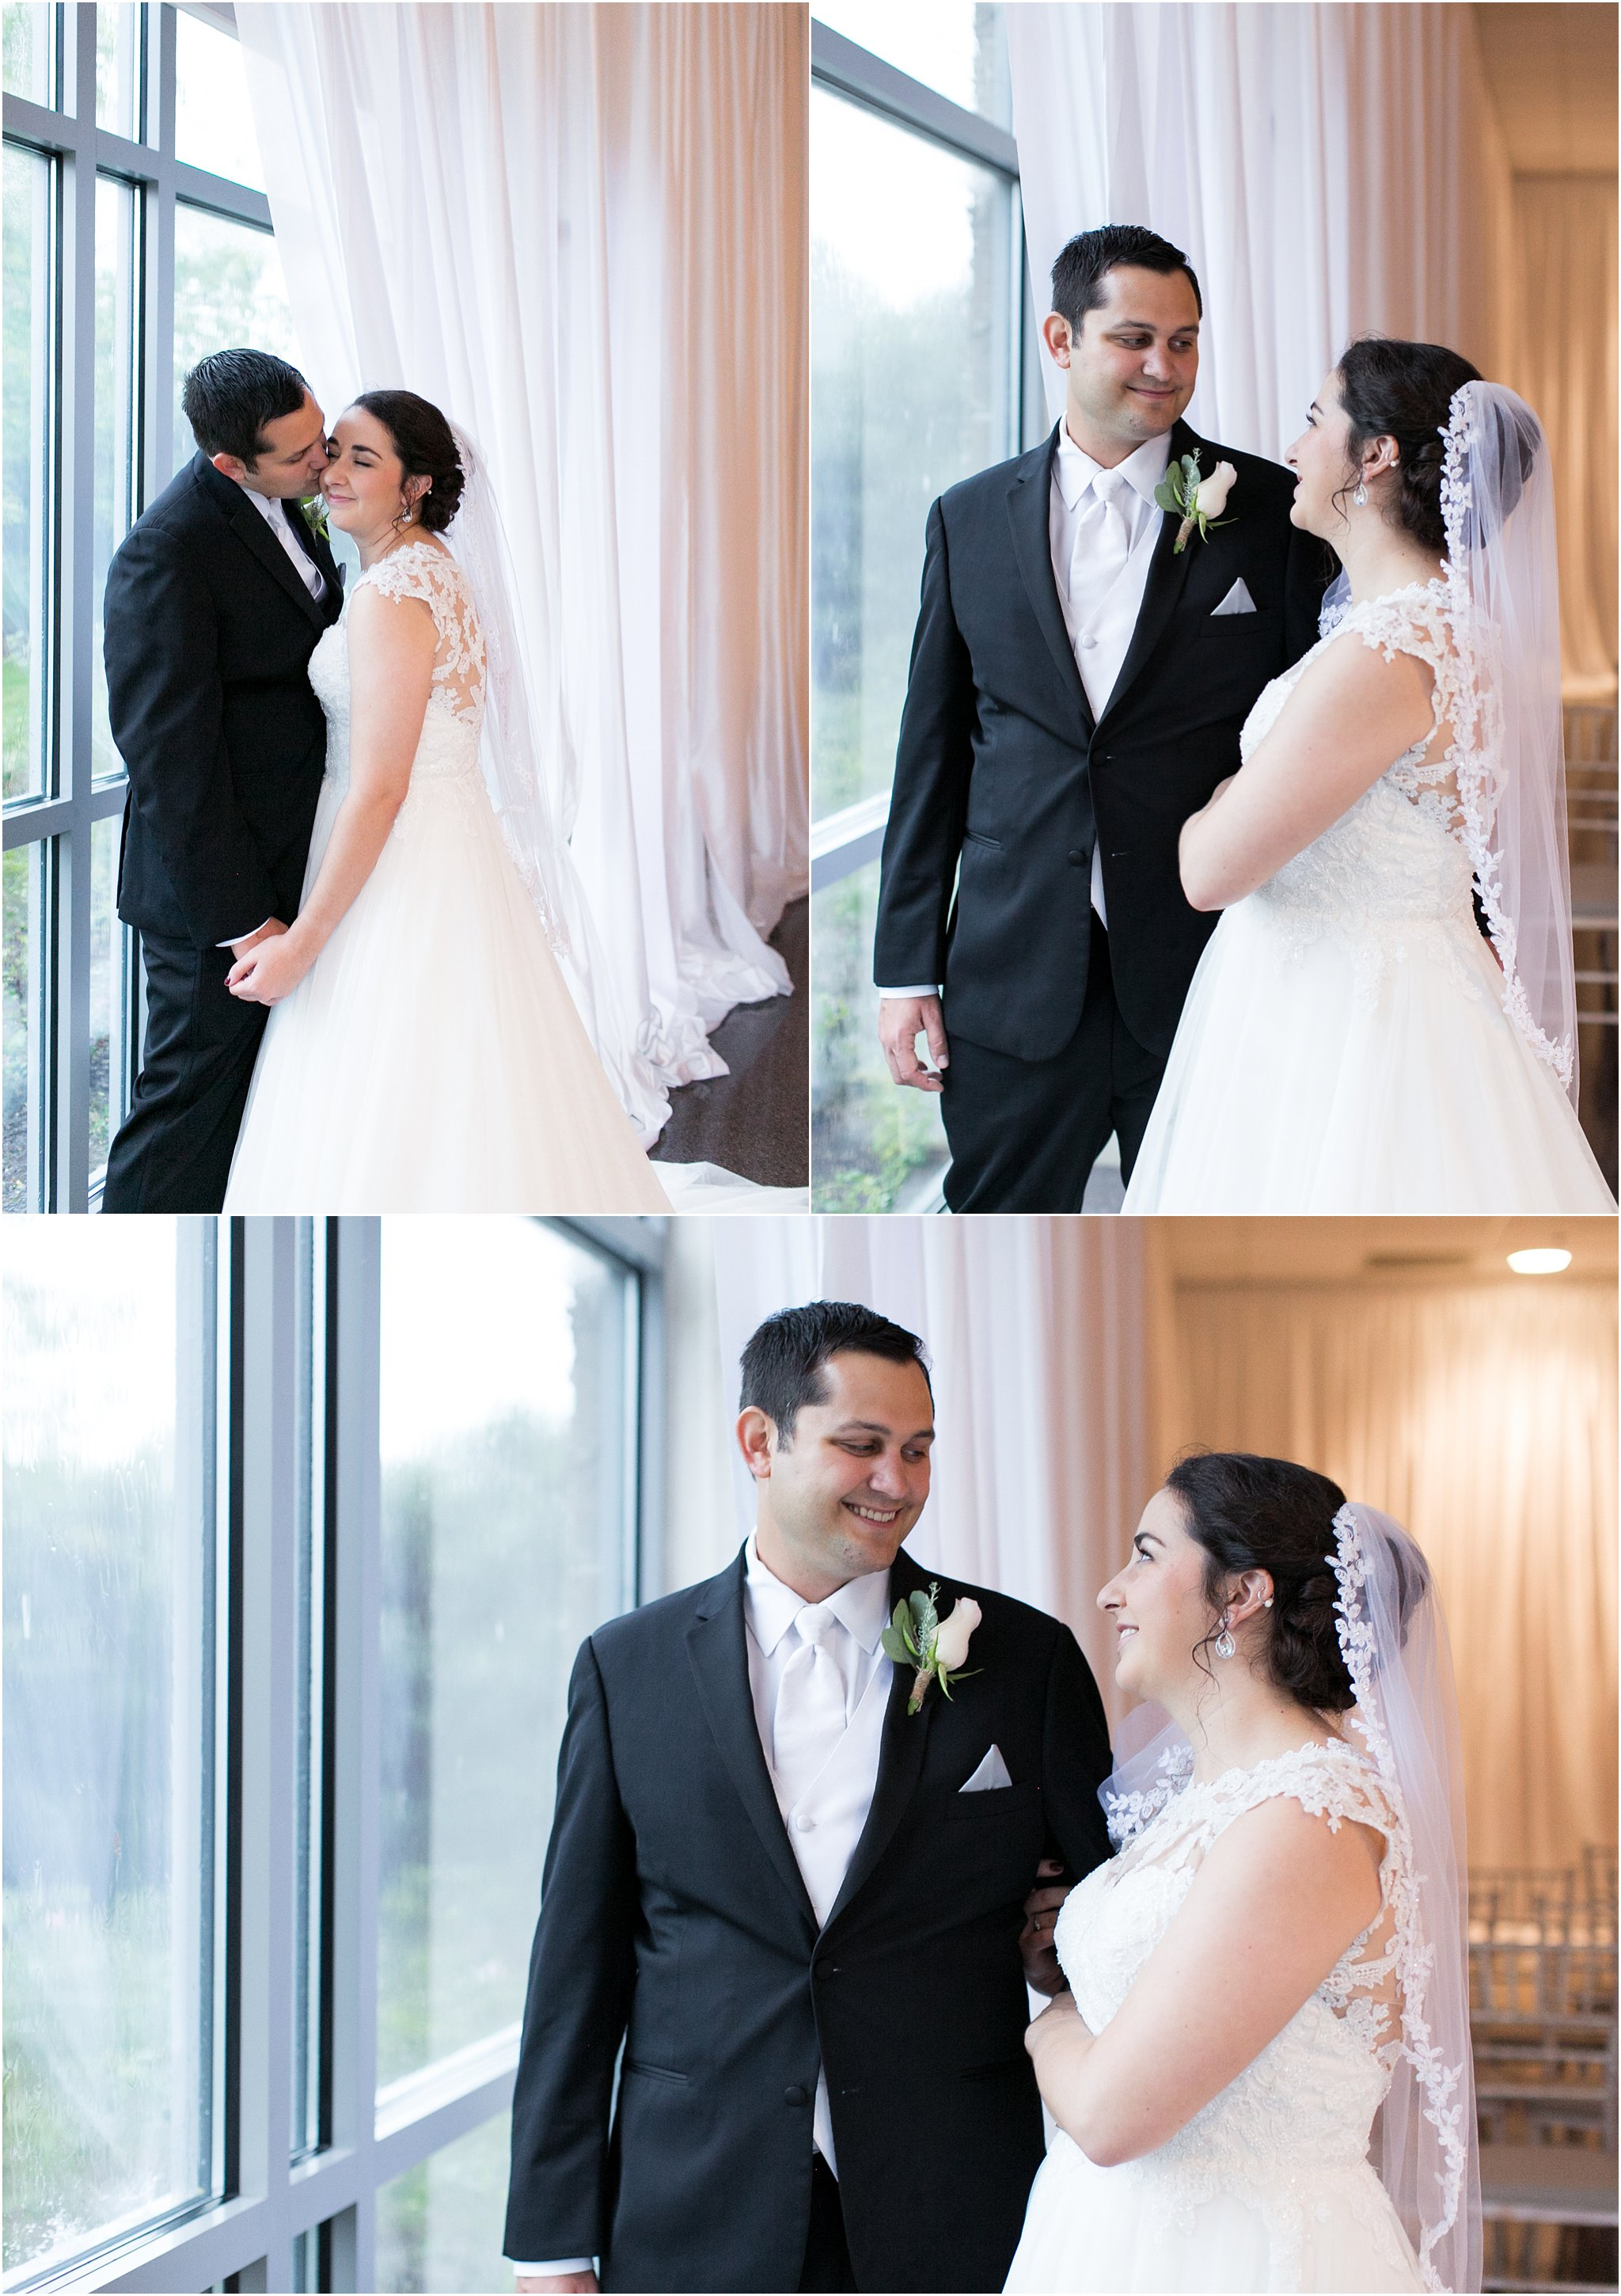 jessica_ryan_photography_virginia_wedding_photographer_wedding_hurricane_norfolk_botanical_gardens_hurricane_matthew_wedding_3571